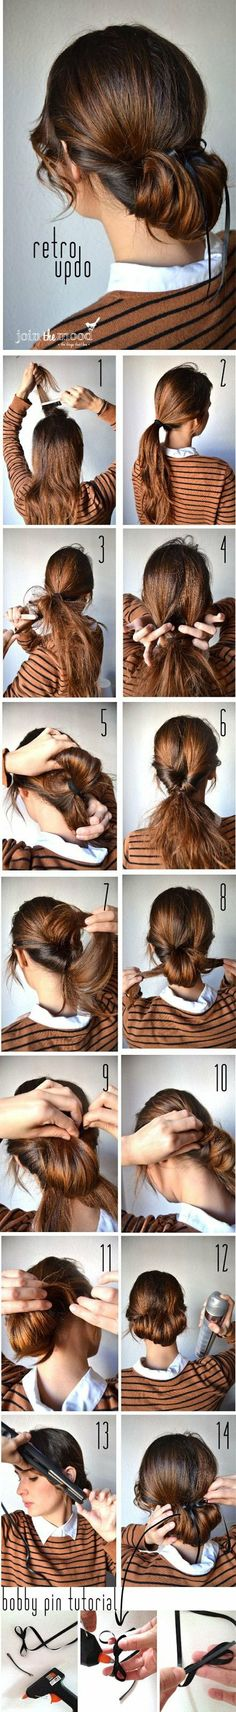 Retro Updo Tutorial: Step by Step Hairstyle for Long Hair Retro Updo Hairstyles, Updo Hairstyles Tutorials, Wedding Hairstyles, Quick Hairstyles, Hairdos, Wedding Updo, Wedding Dress, Brown Blonde Hair, Popular Haircuts